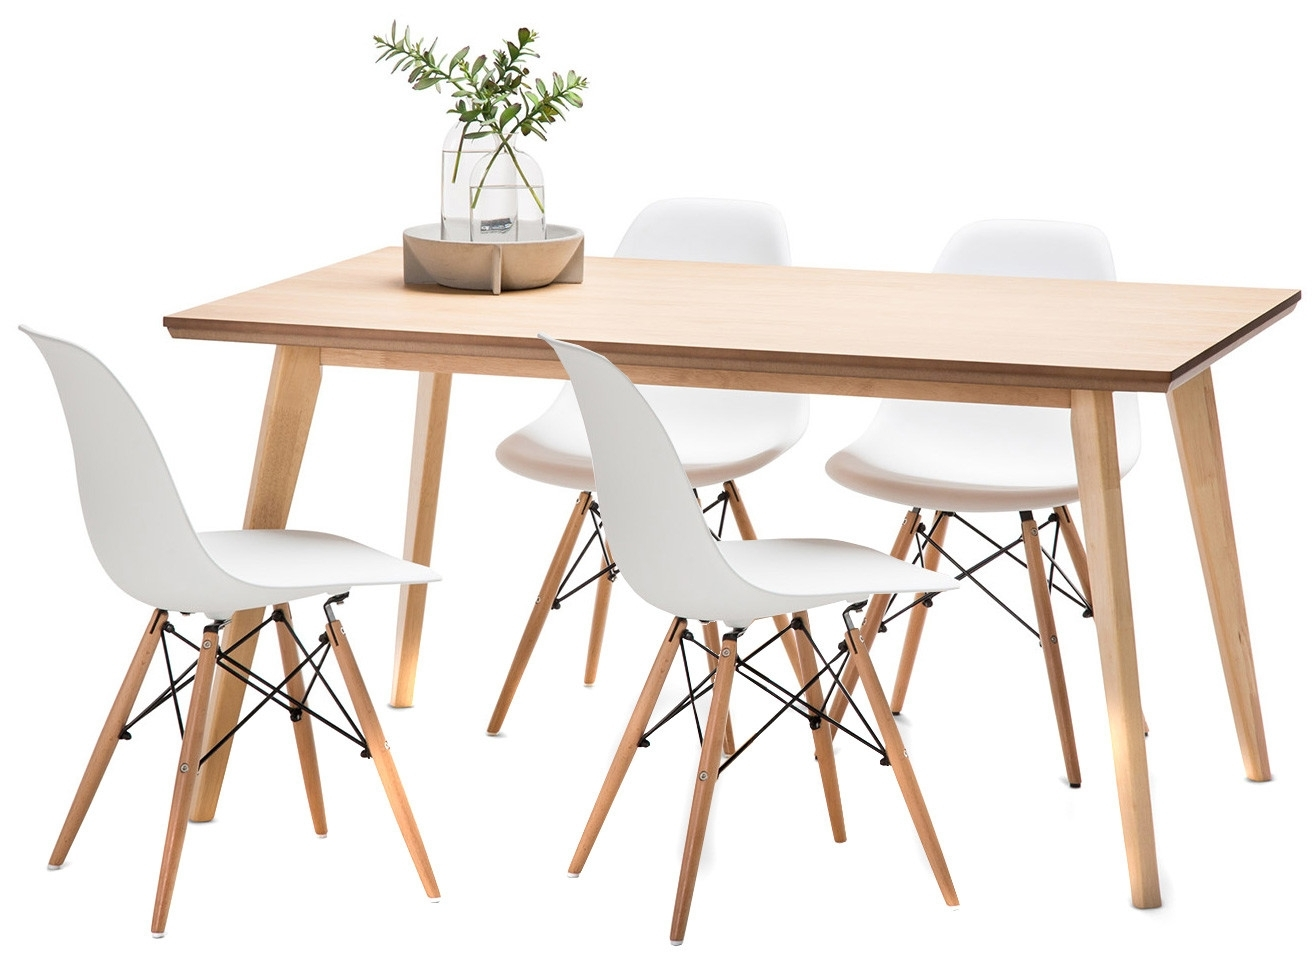 New Wyatt Dining Table Set With 4 Eames Replica Chairs | Ebay Regarding 2017 Wyatt Dining Tables (Image 10 of 20)